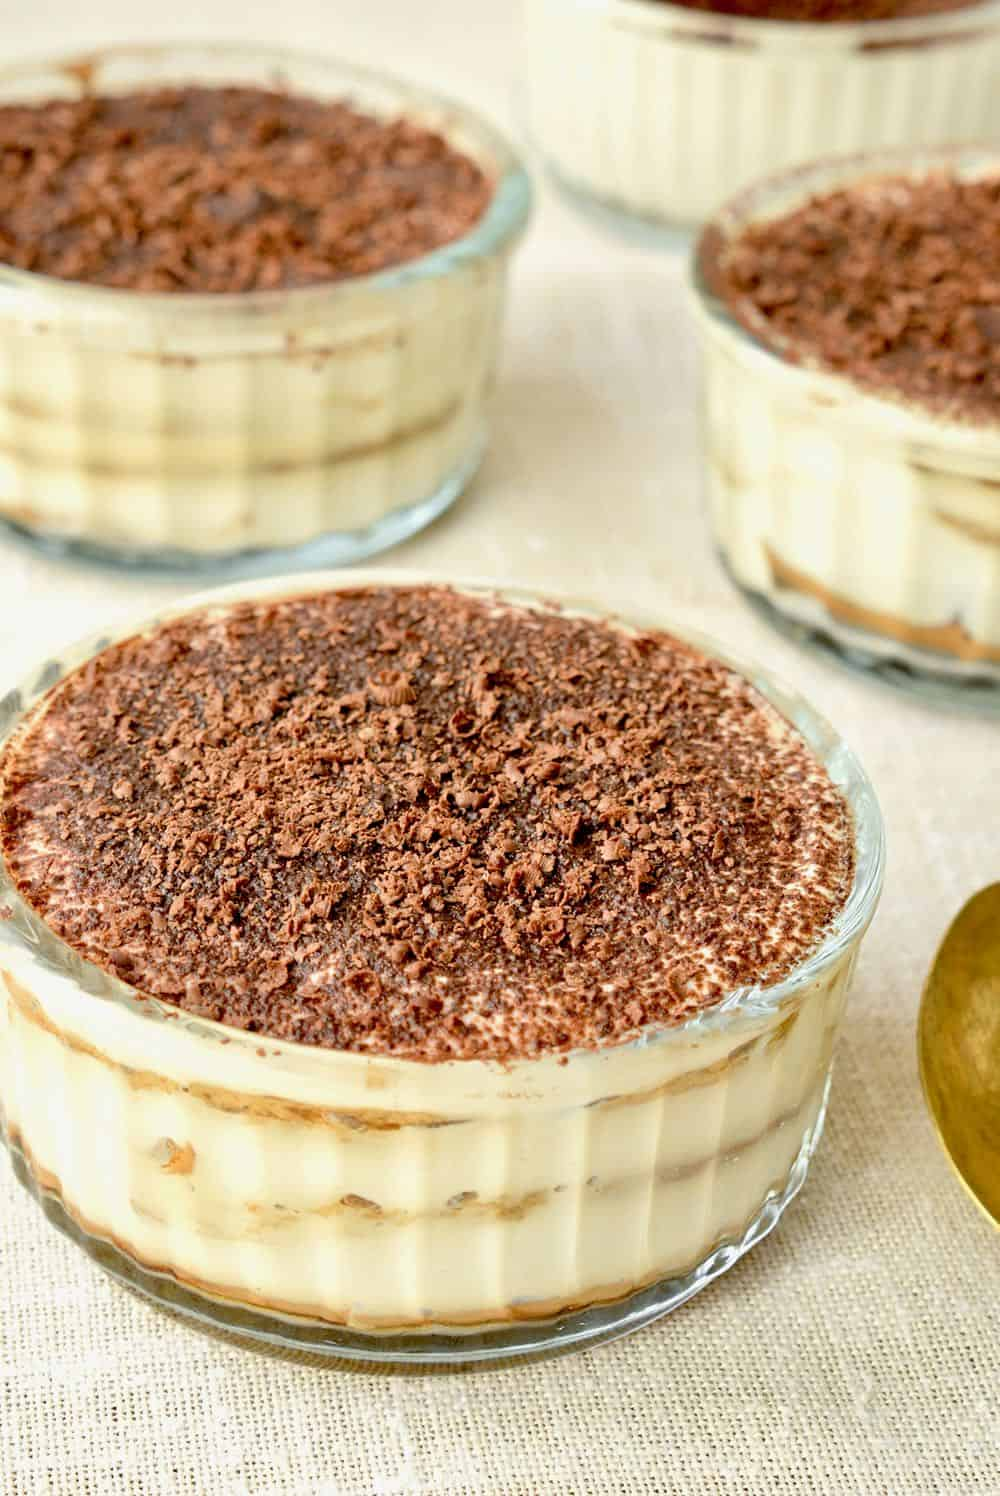 Individual servings of vegan tiramisu with chocolate and cocoa on top